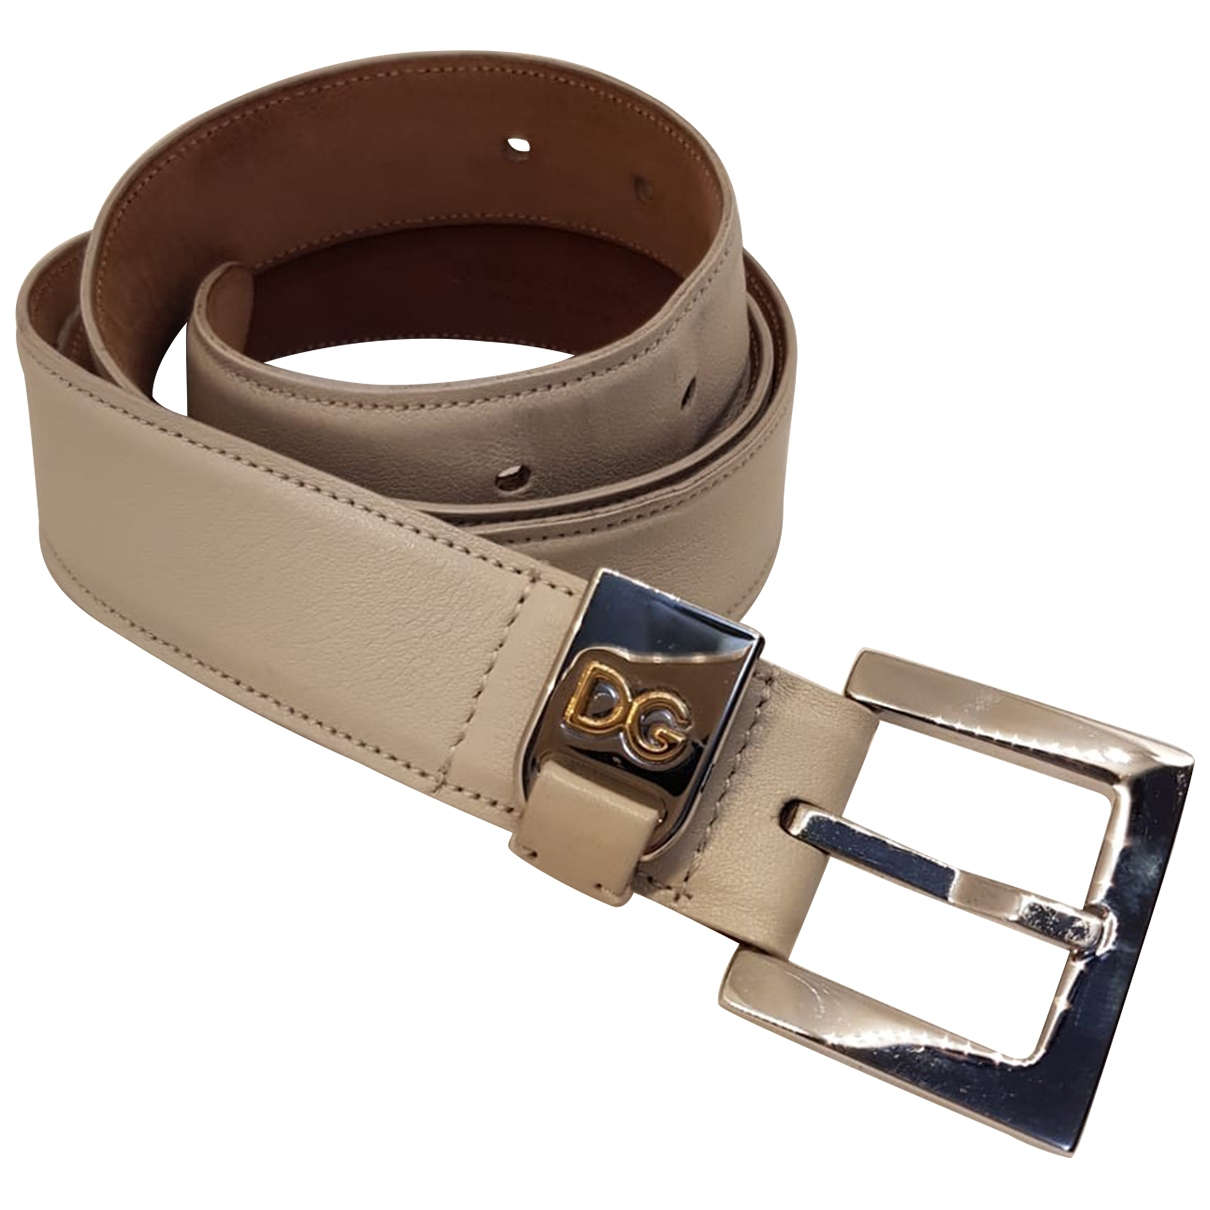 D&g \N Camel Leather belt for Women 37 Inches